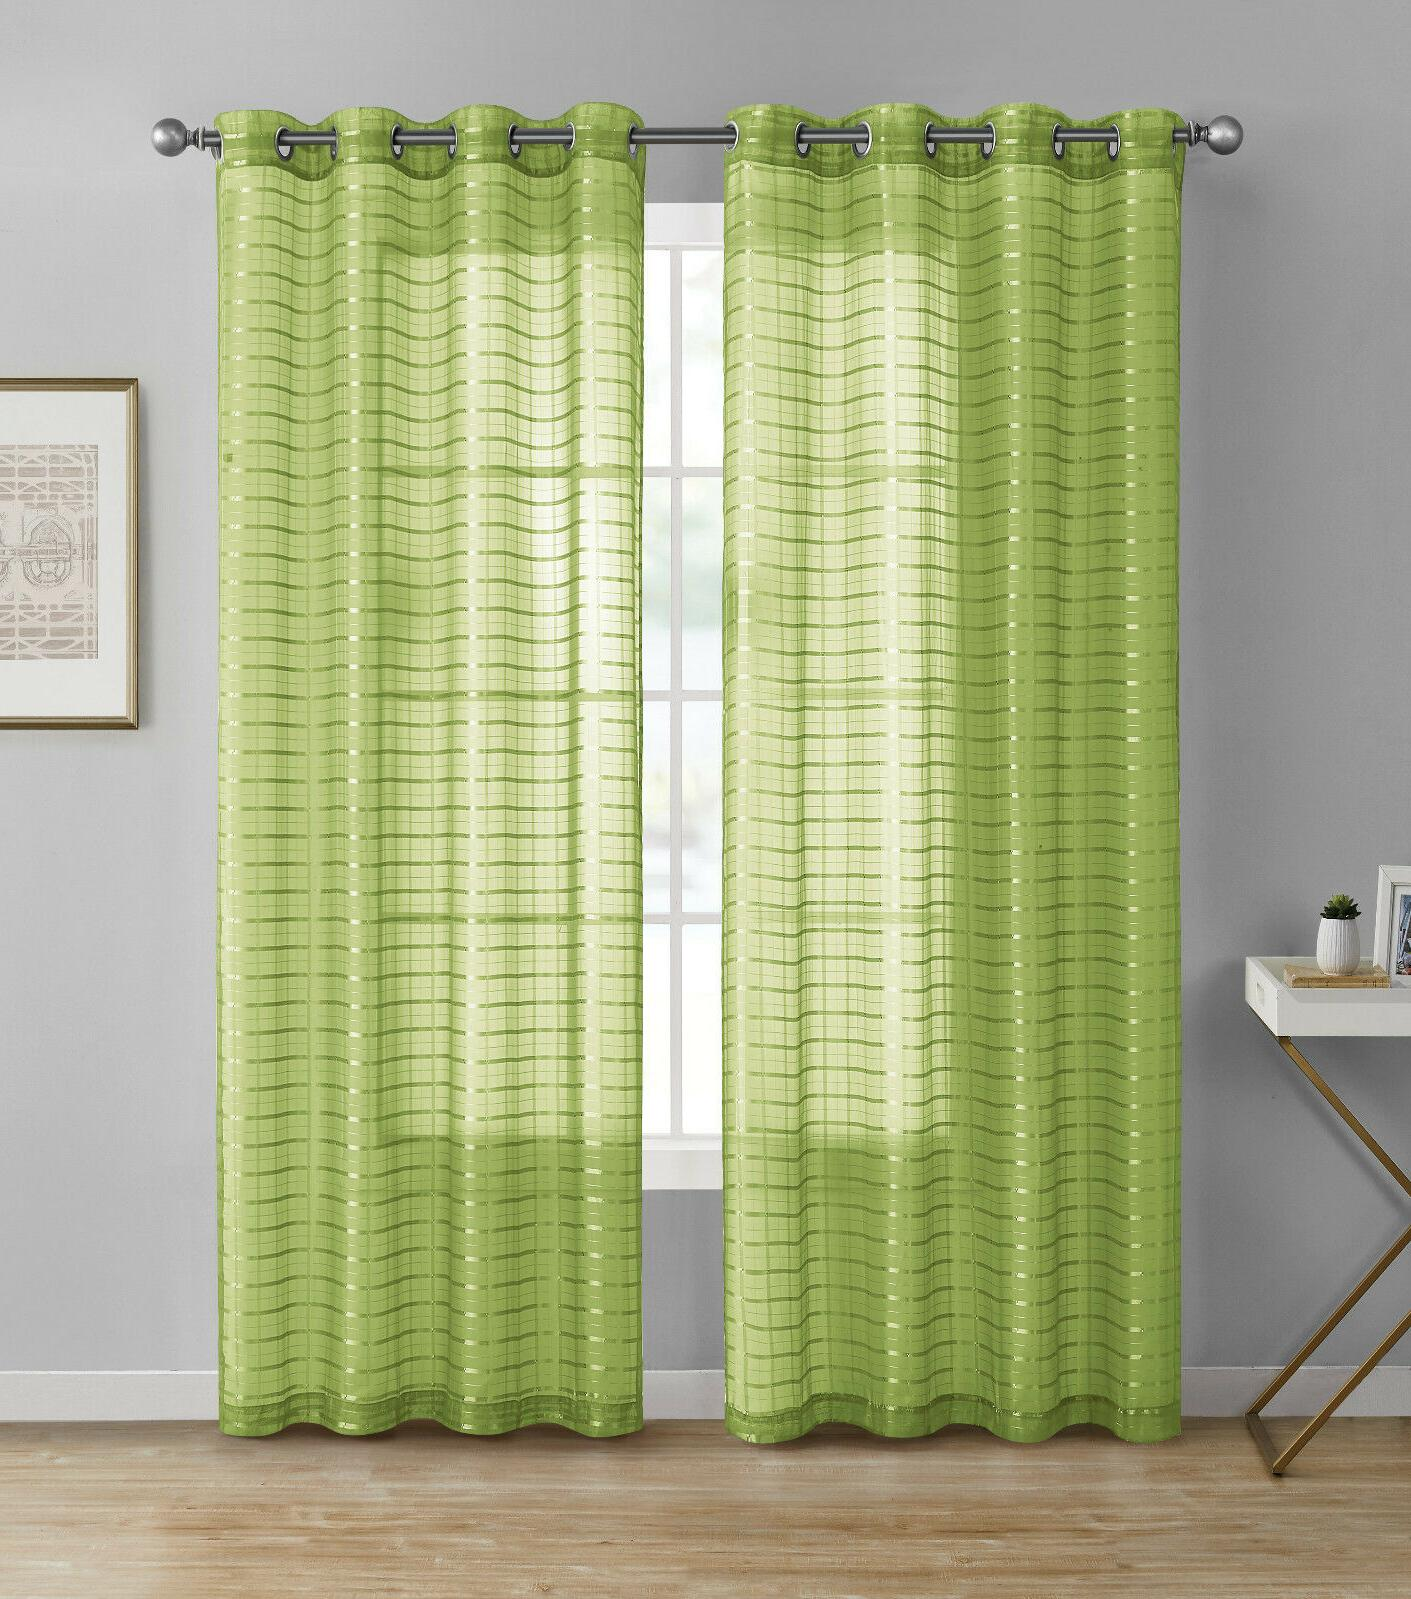 2 Pack: Plaid Curtains Assorted